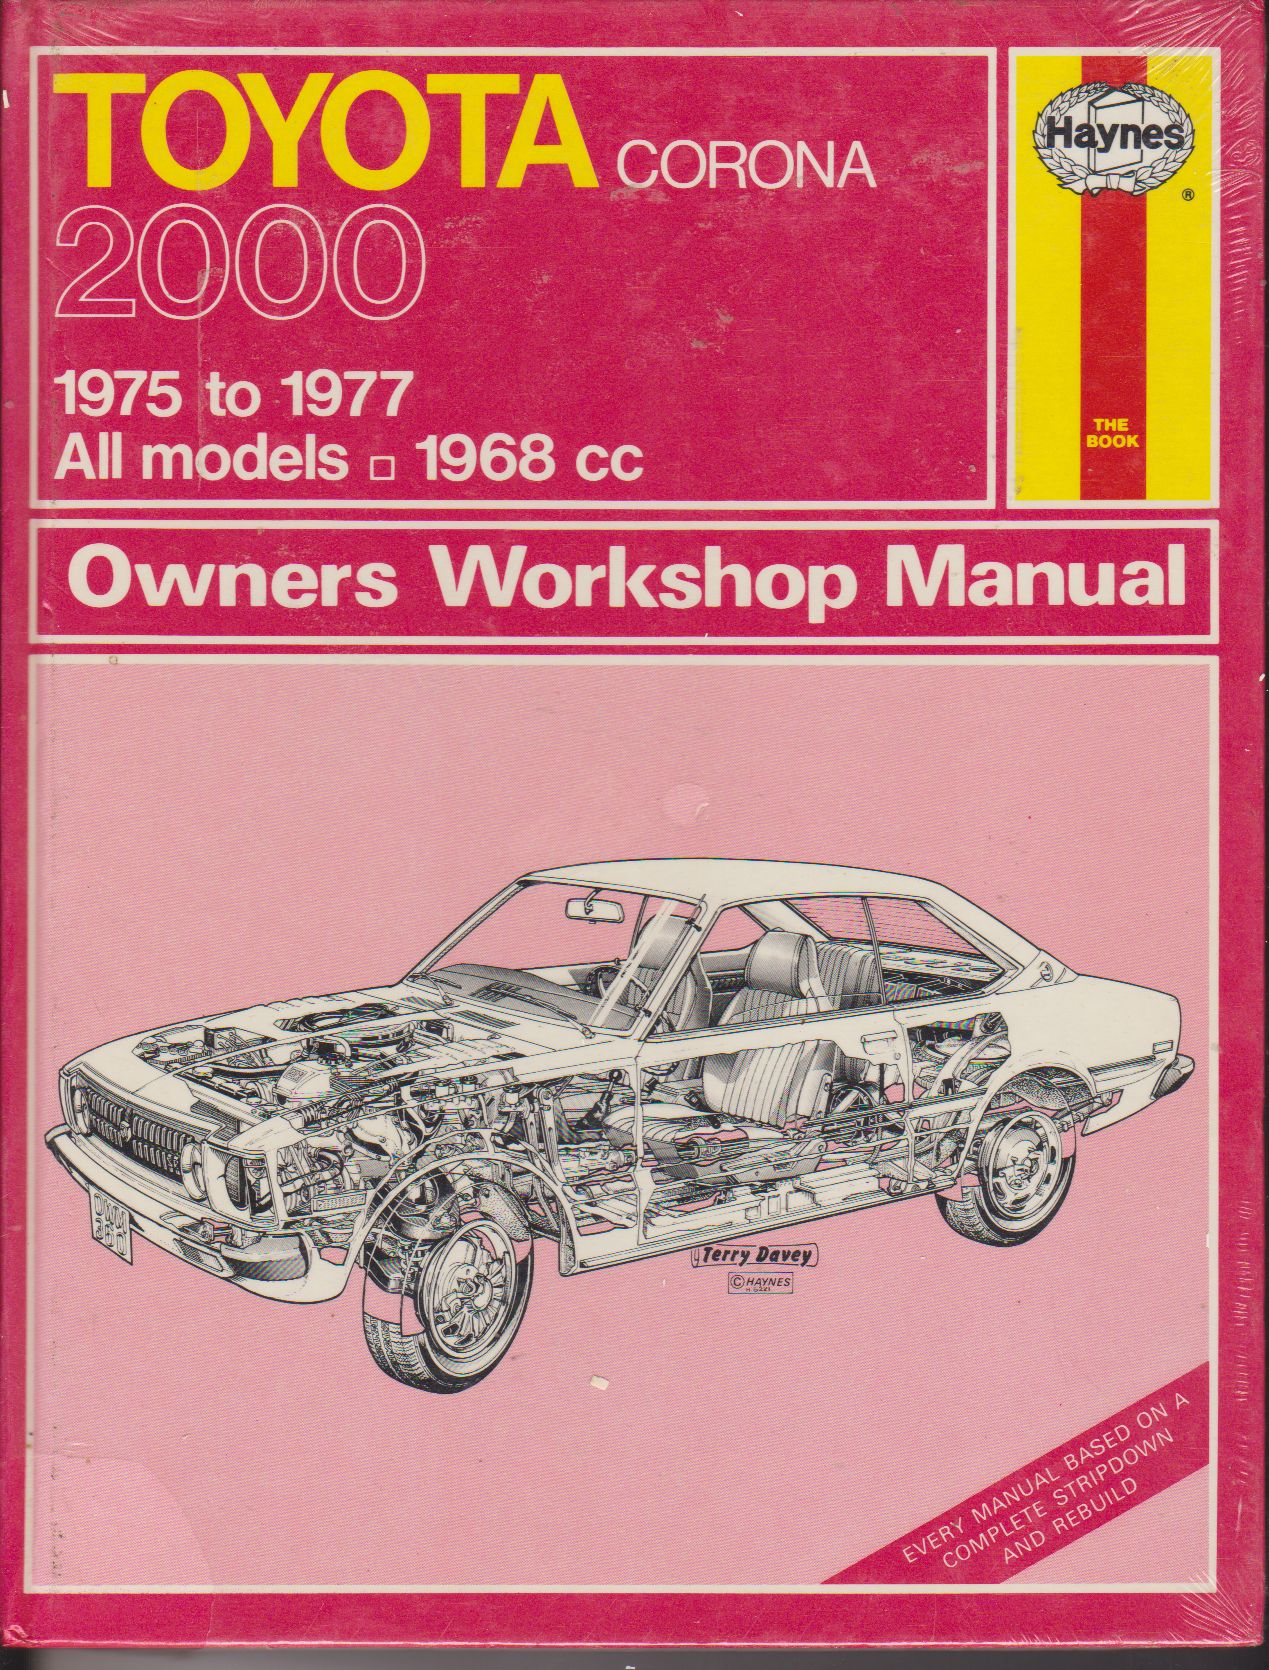 Toyota Corona 2000 1975-77 Owners Workshop Manual